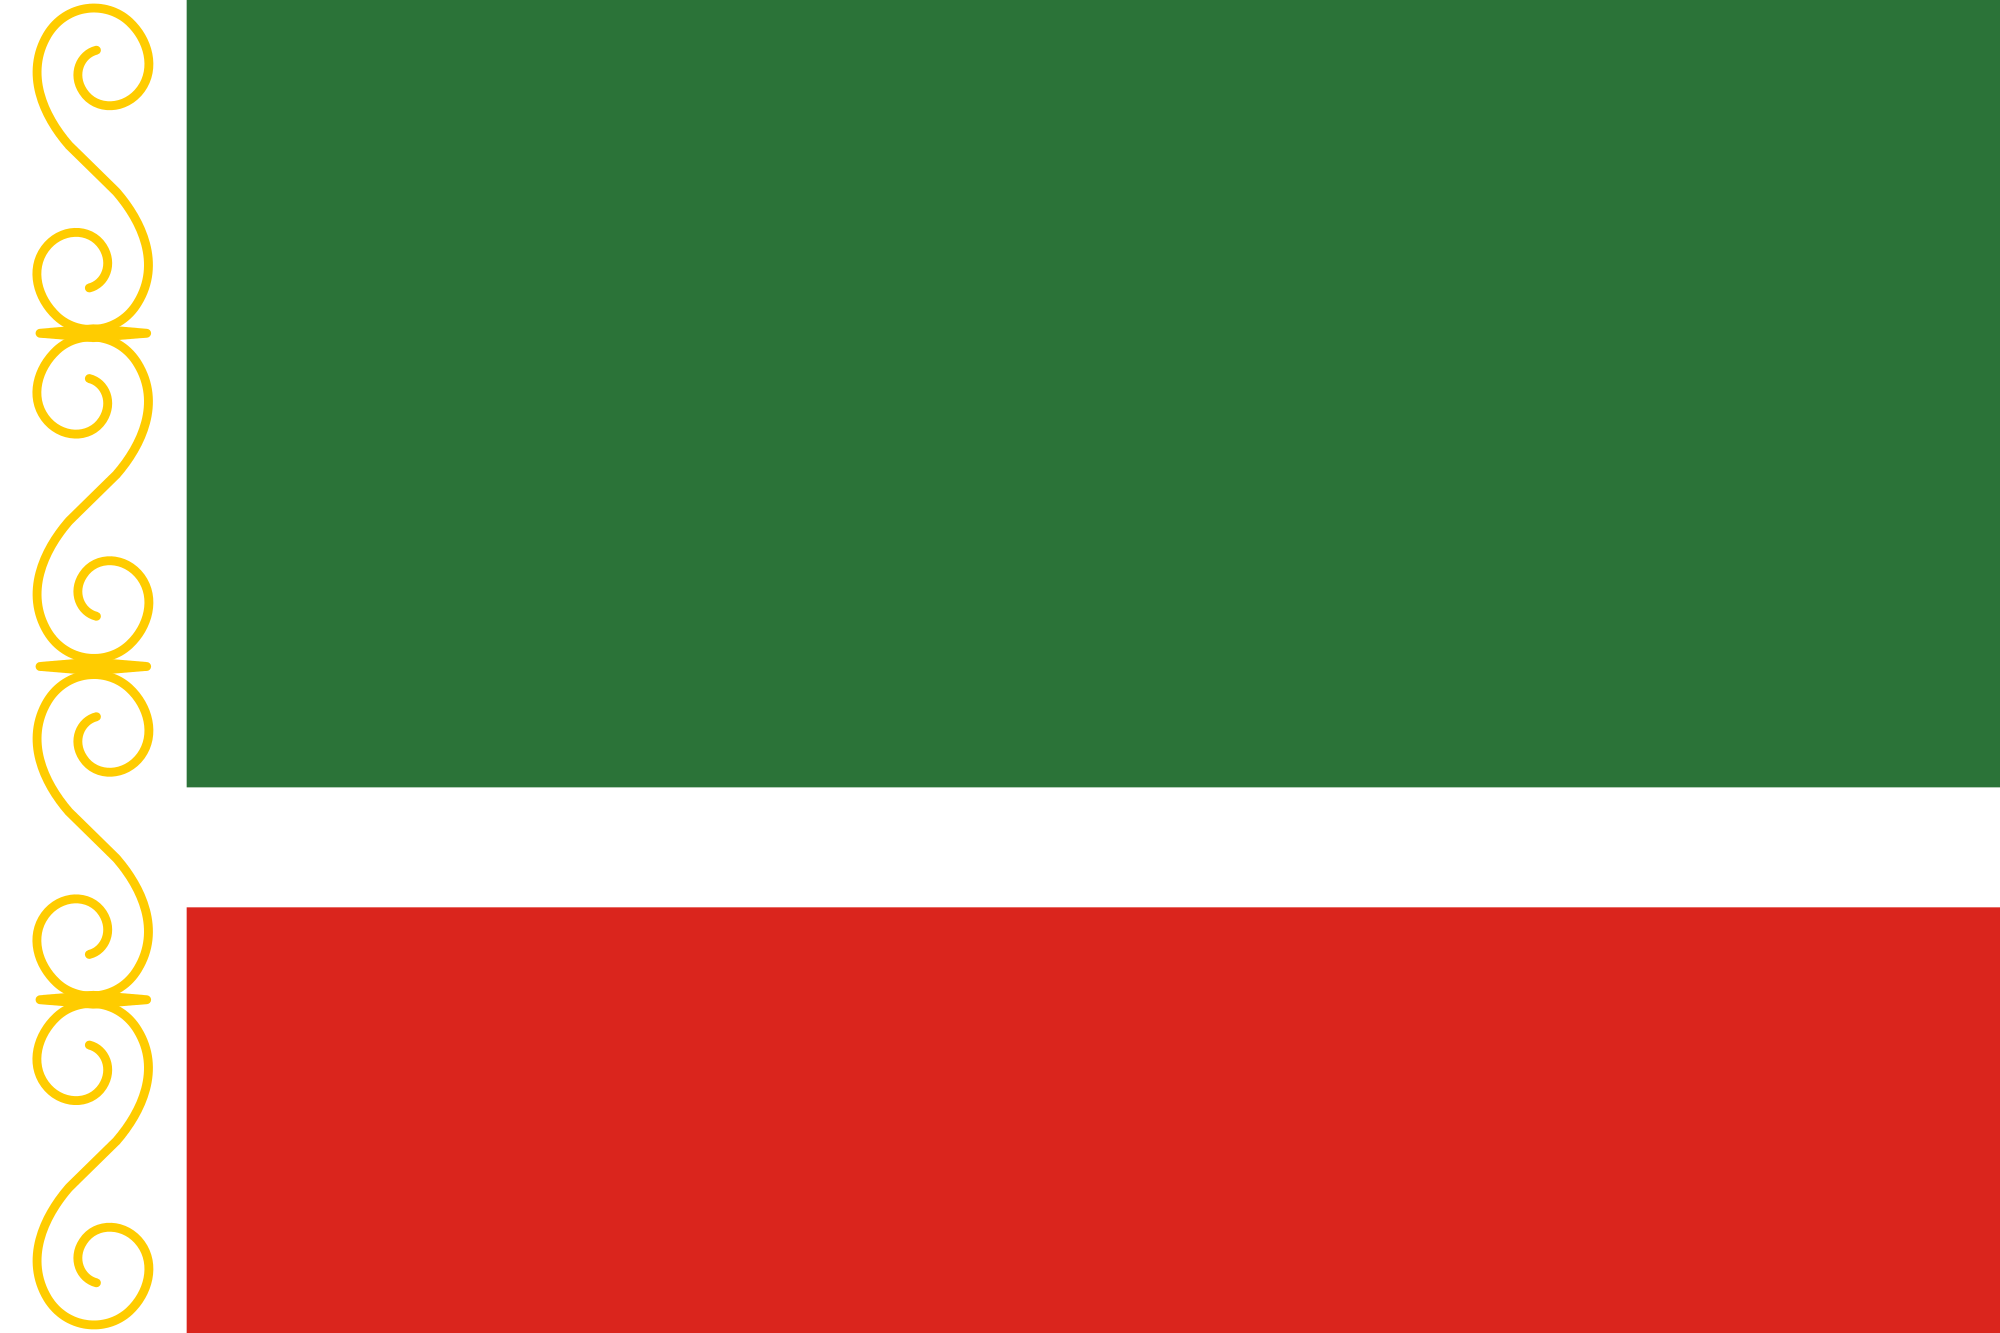 Flag Of Chechnya clipart #6, Download drawings